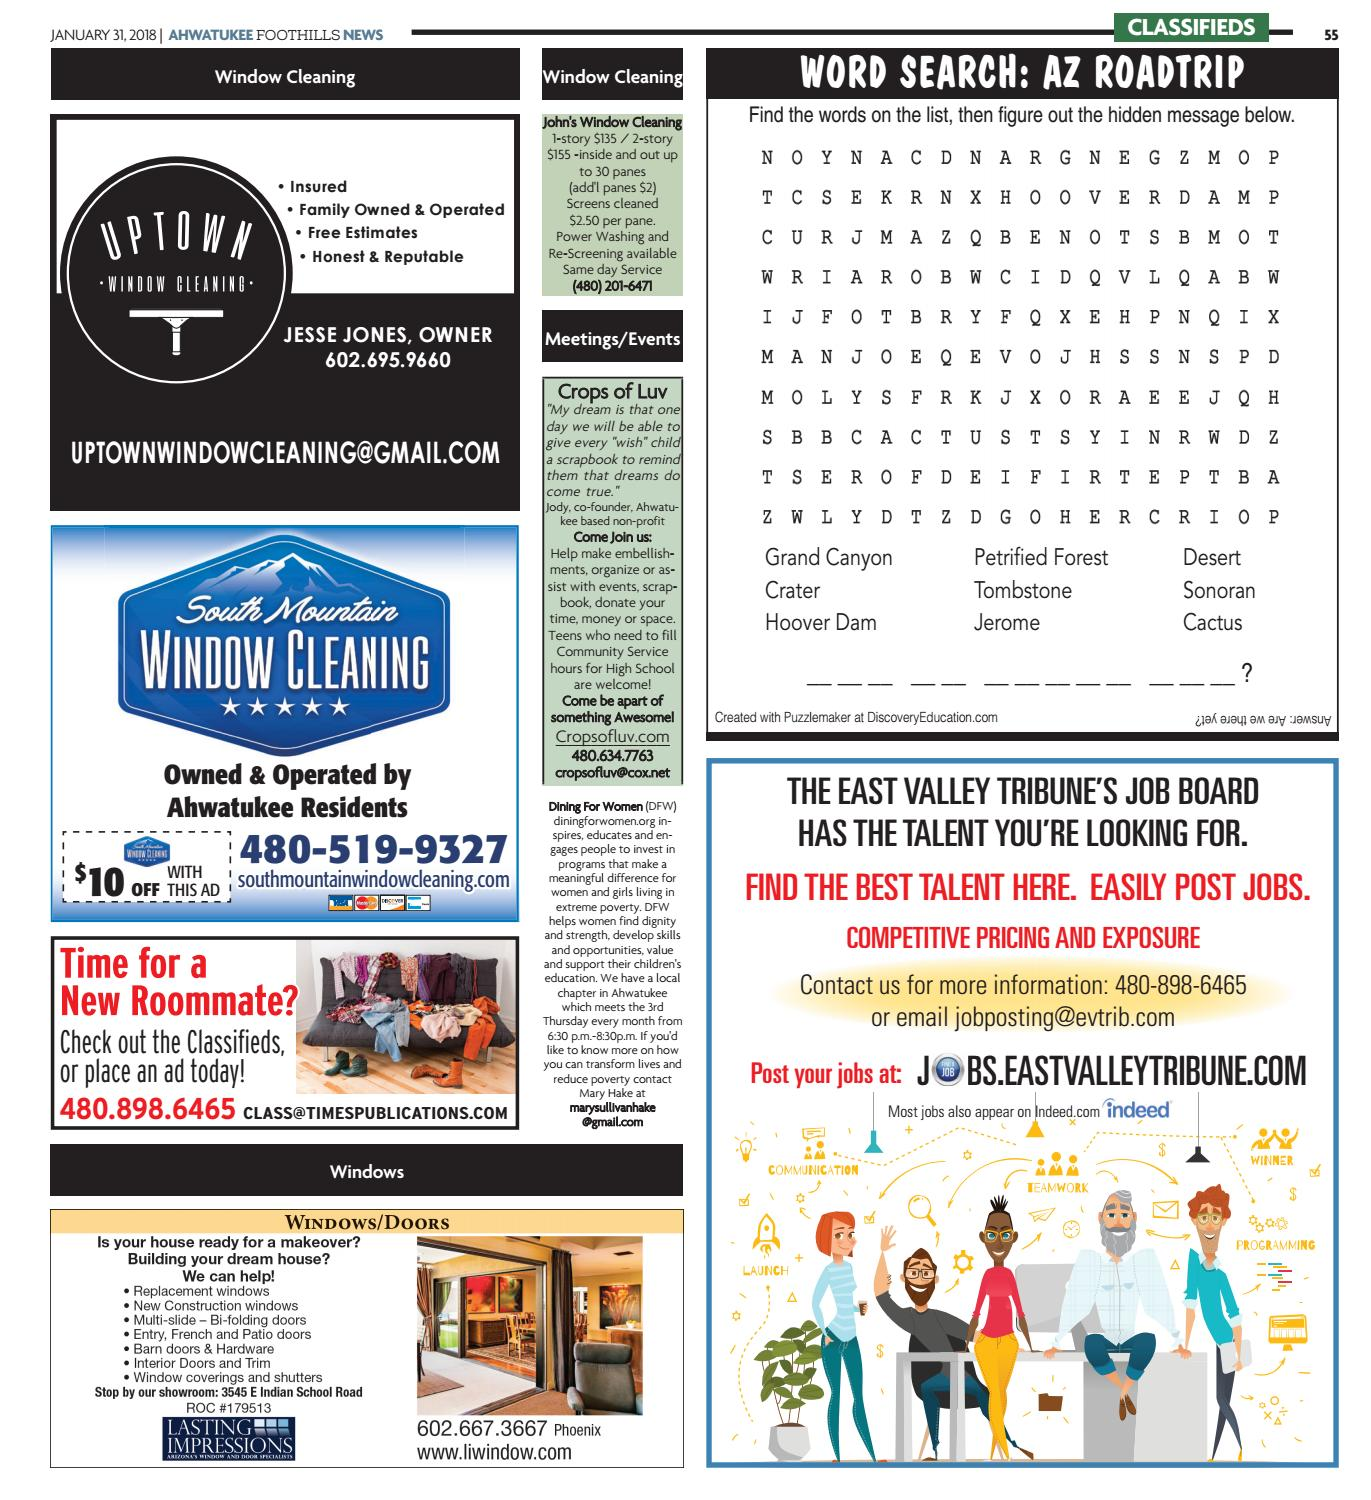 Ahwatukee Foothills News January 31, 2018 by Times Media Group - issuu